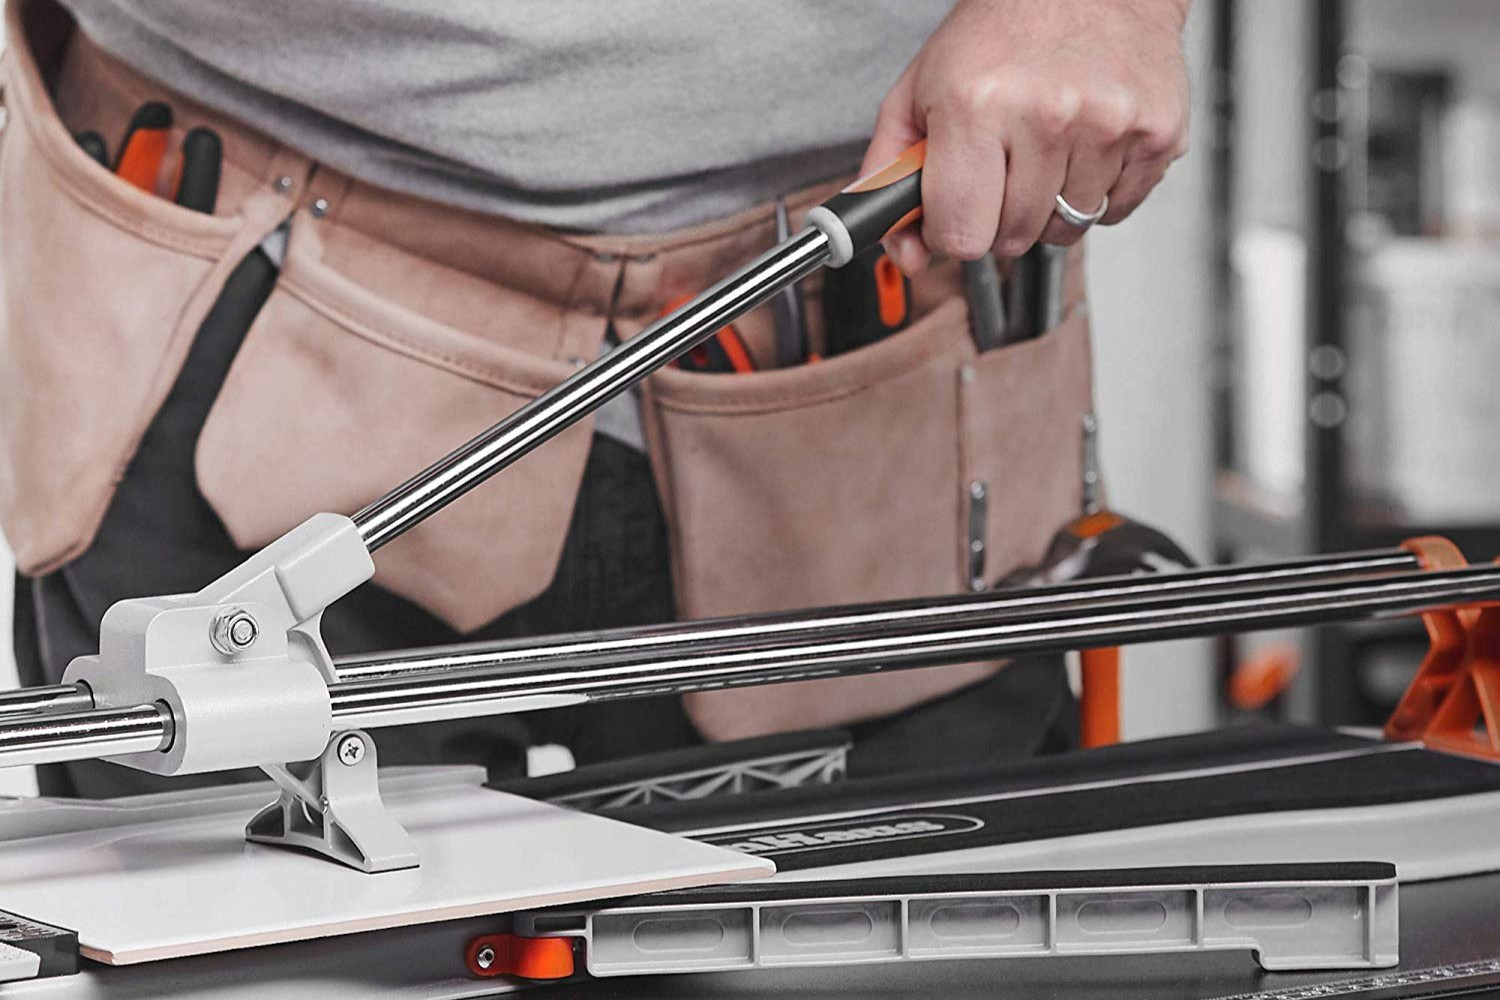 The Best Manual Tile Cutters And Wet Saws For Your DIY Renovation